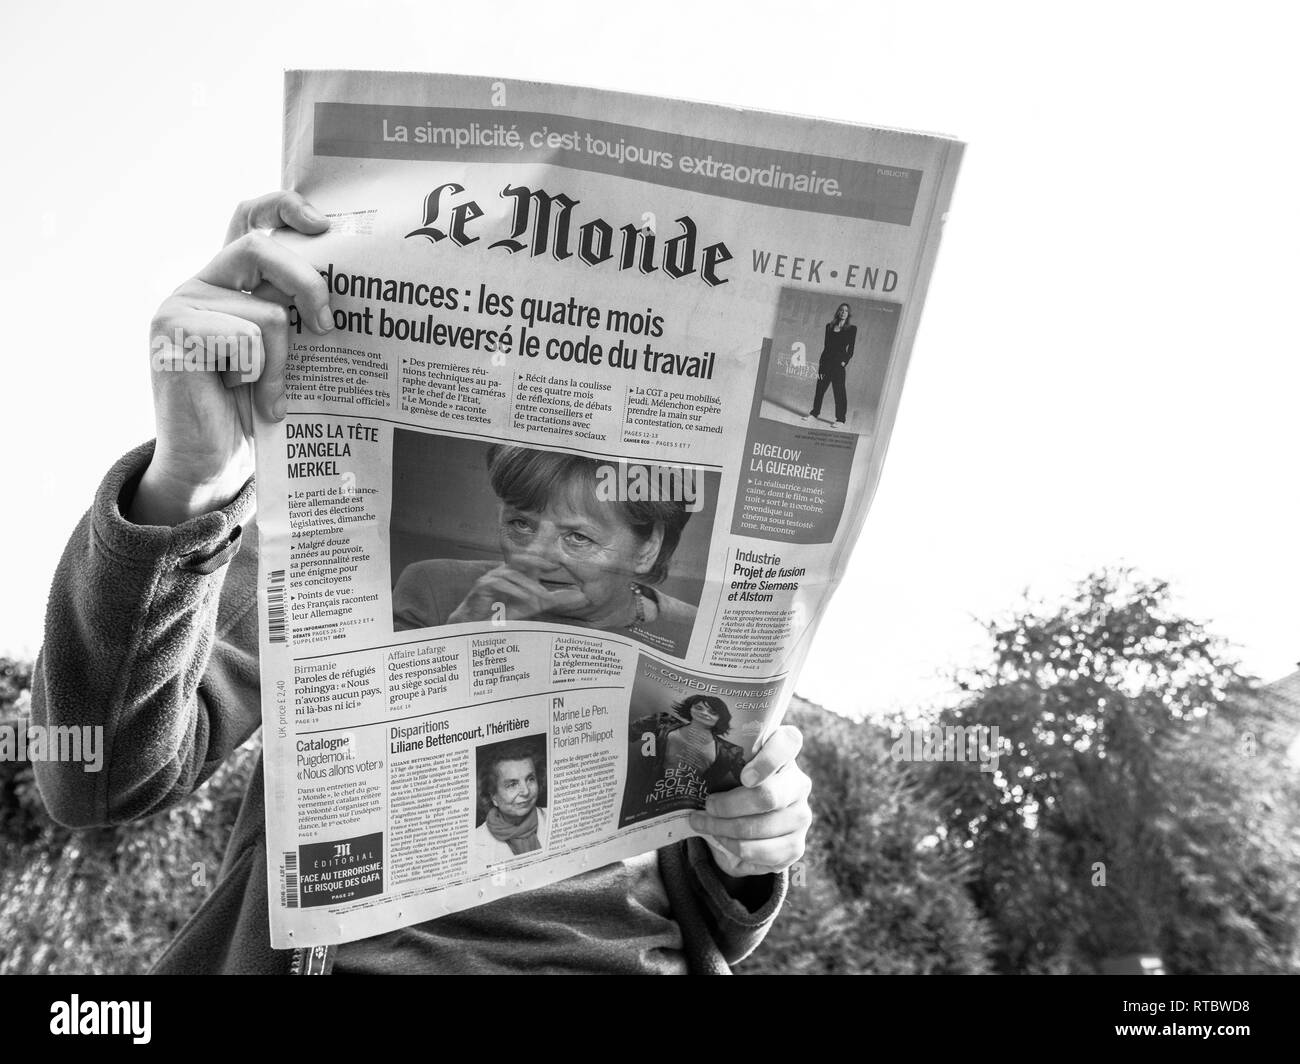 PARIS, FRANCE - SEP 24, 2017: View from below of woman reading latest newspaper Le Monde with portrait of Angela Merkel before the election in Germany for the Chancellor of Germany, the head of the federal government Stock Photo